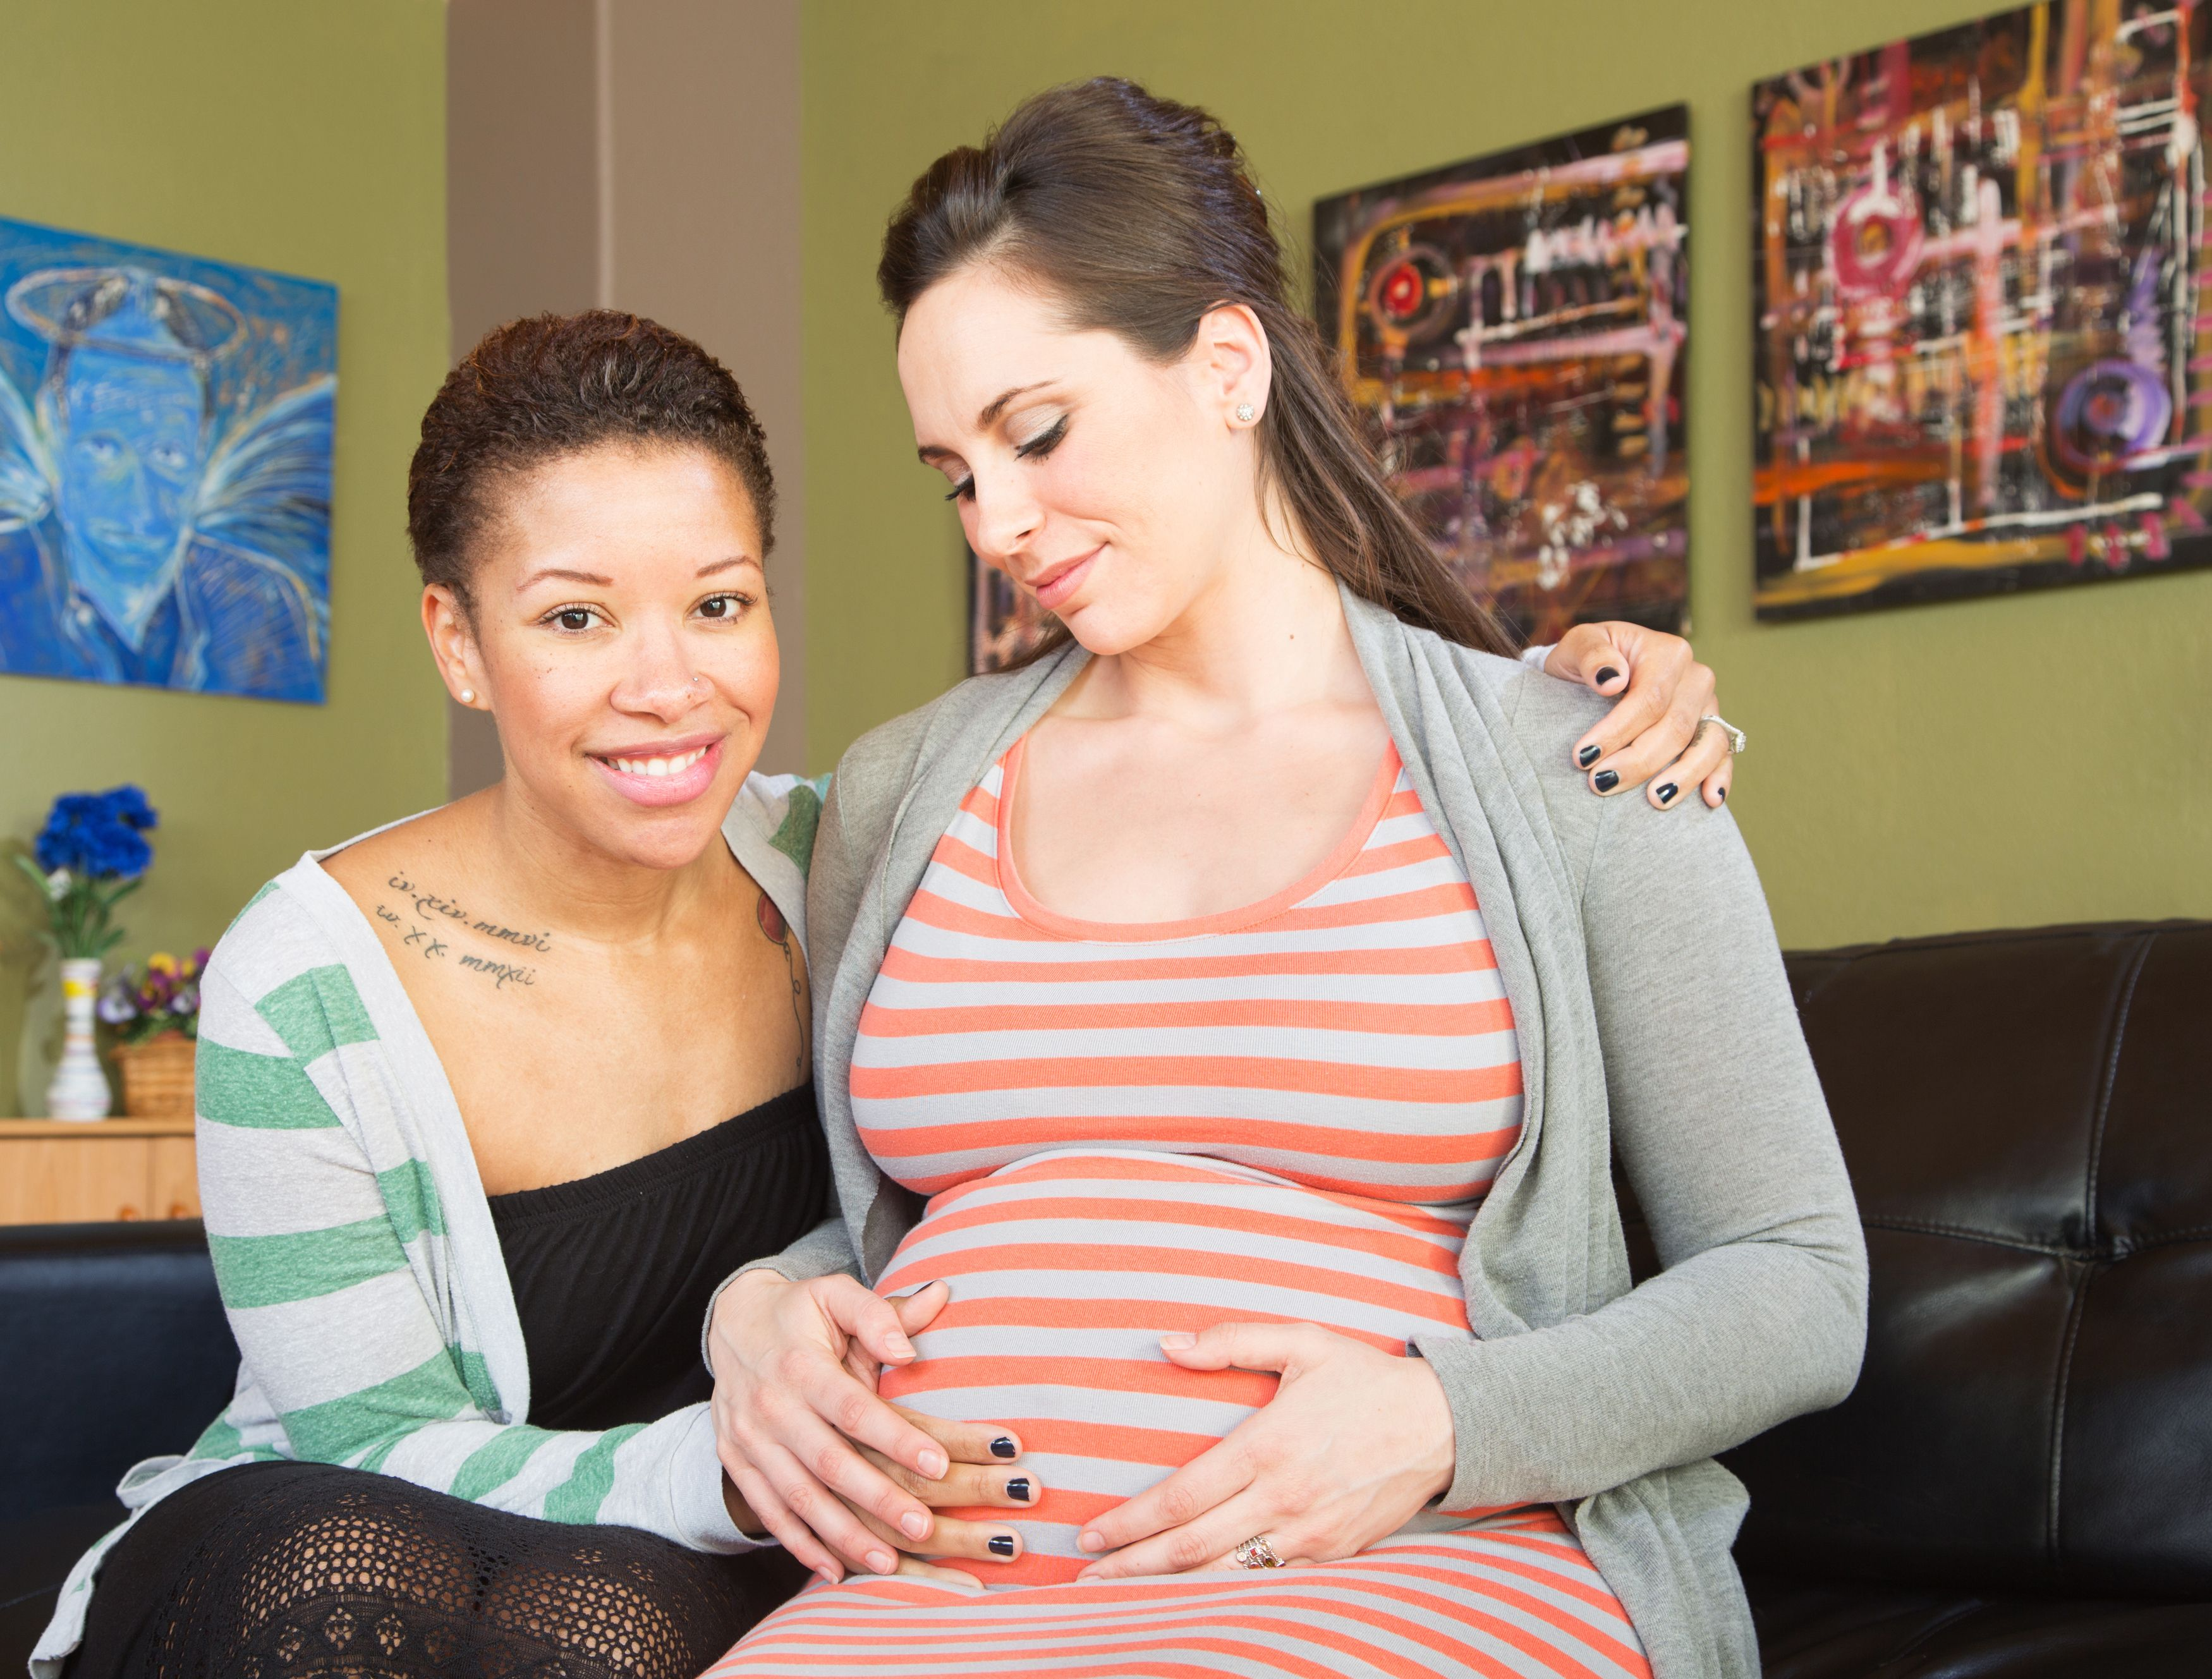 A lesbian couple: a woman with her arm around her pregnant partner